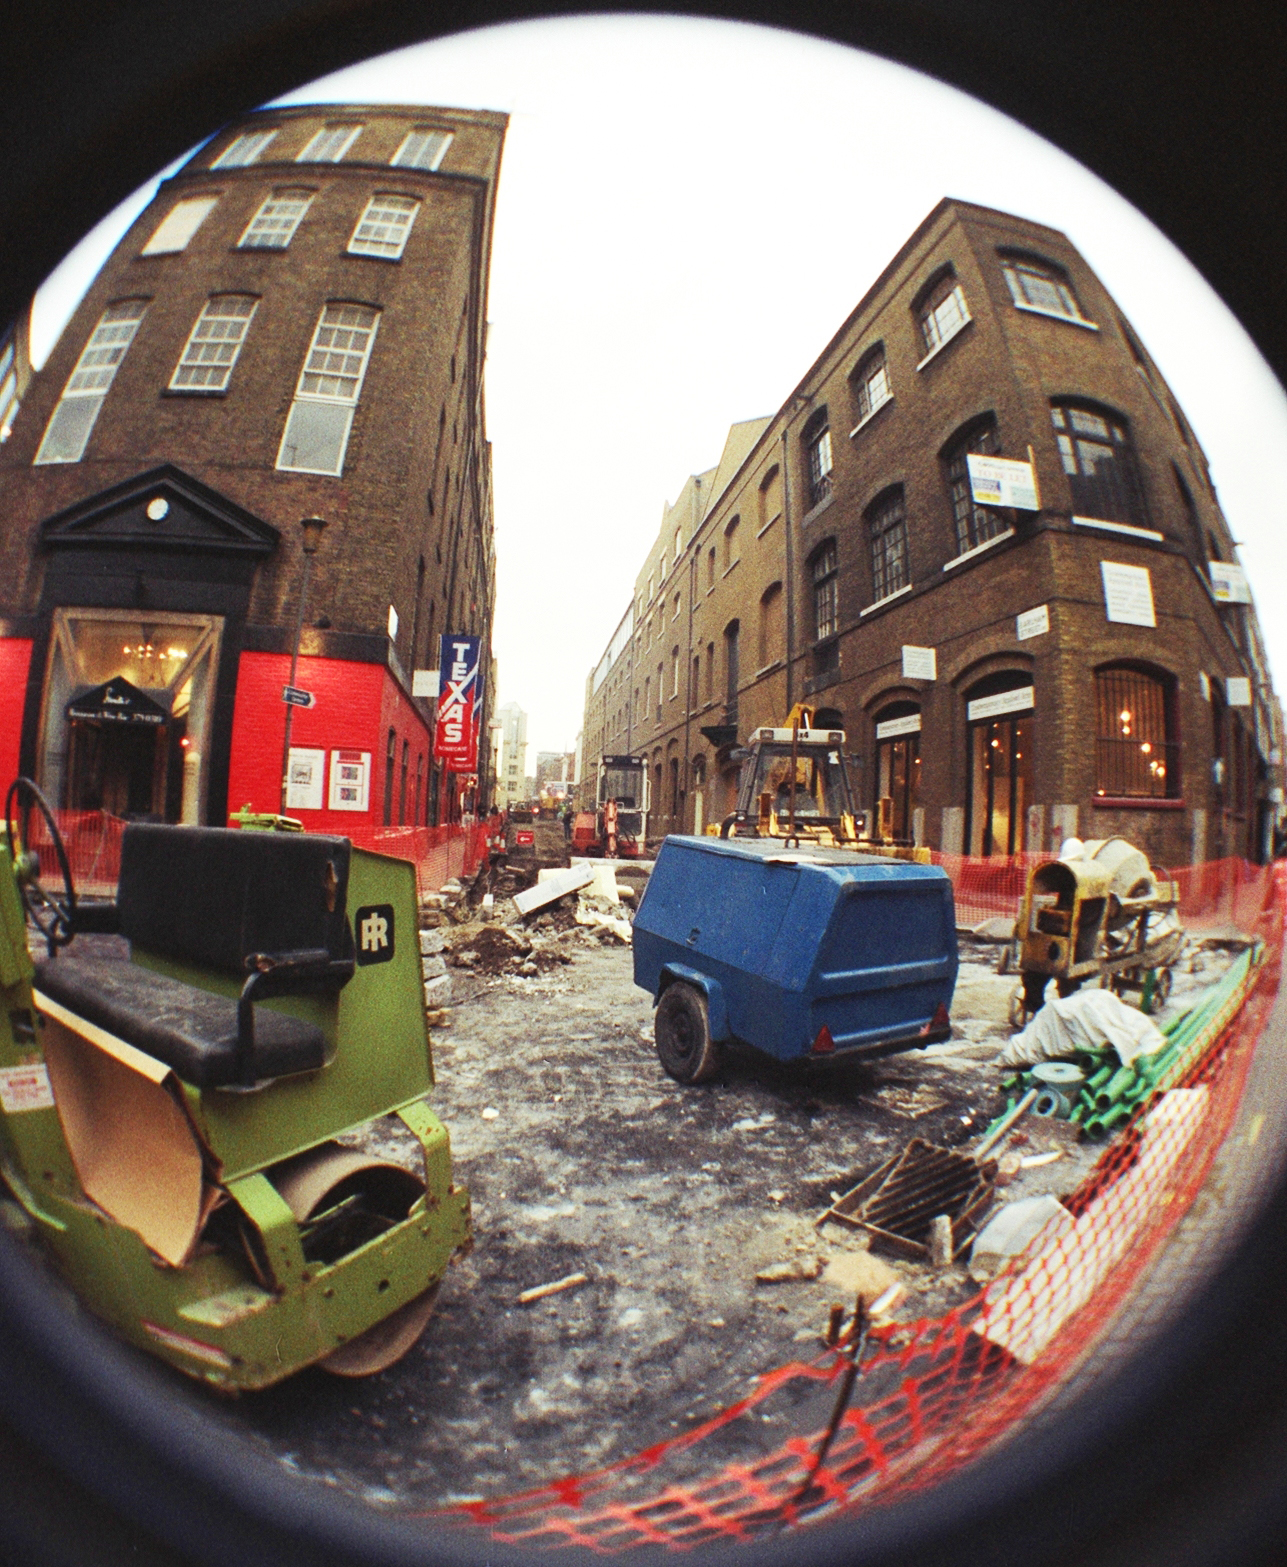 The works begin on Neal Street and Earlham Street east.